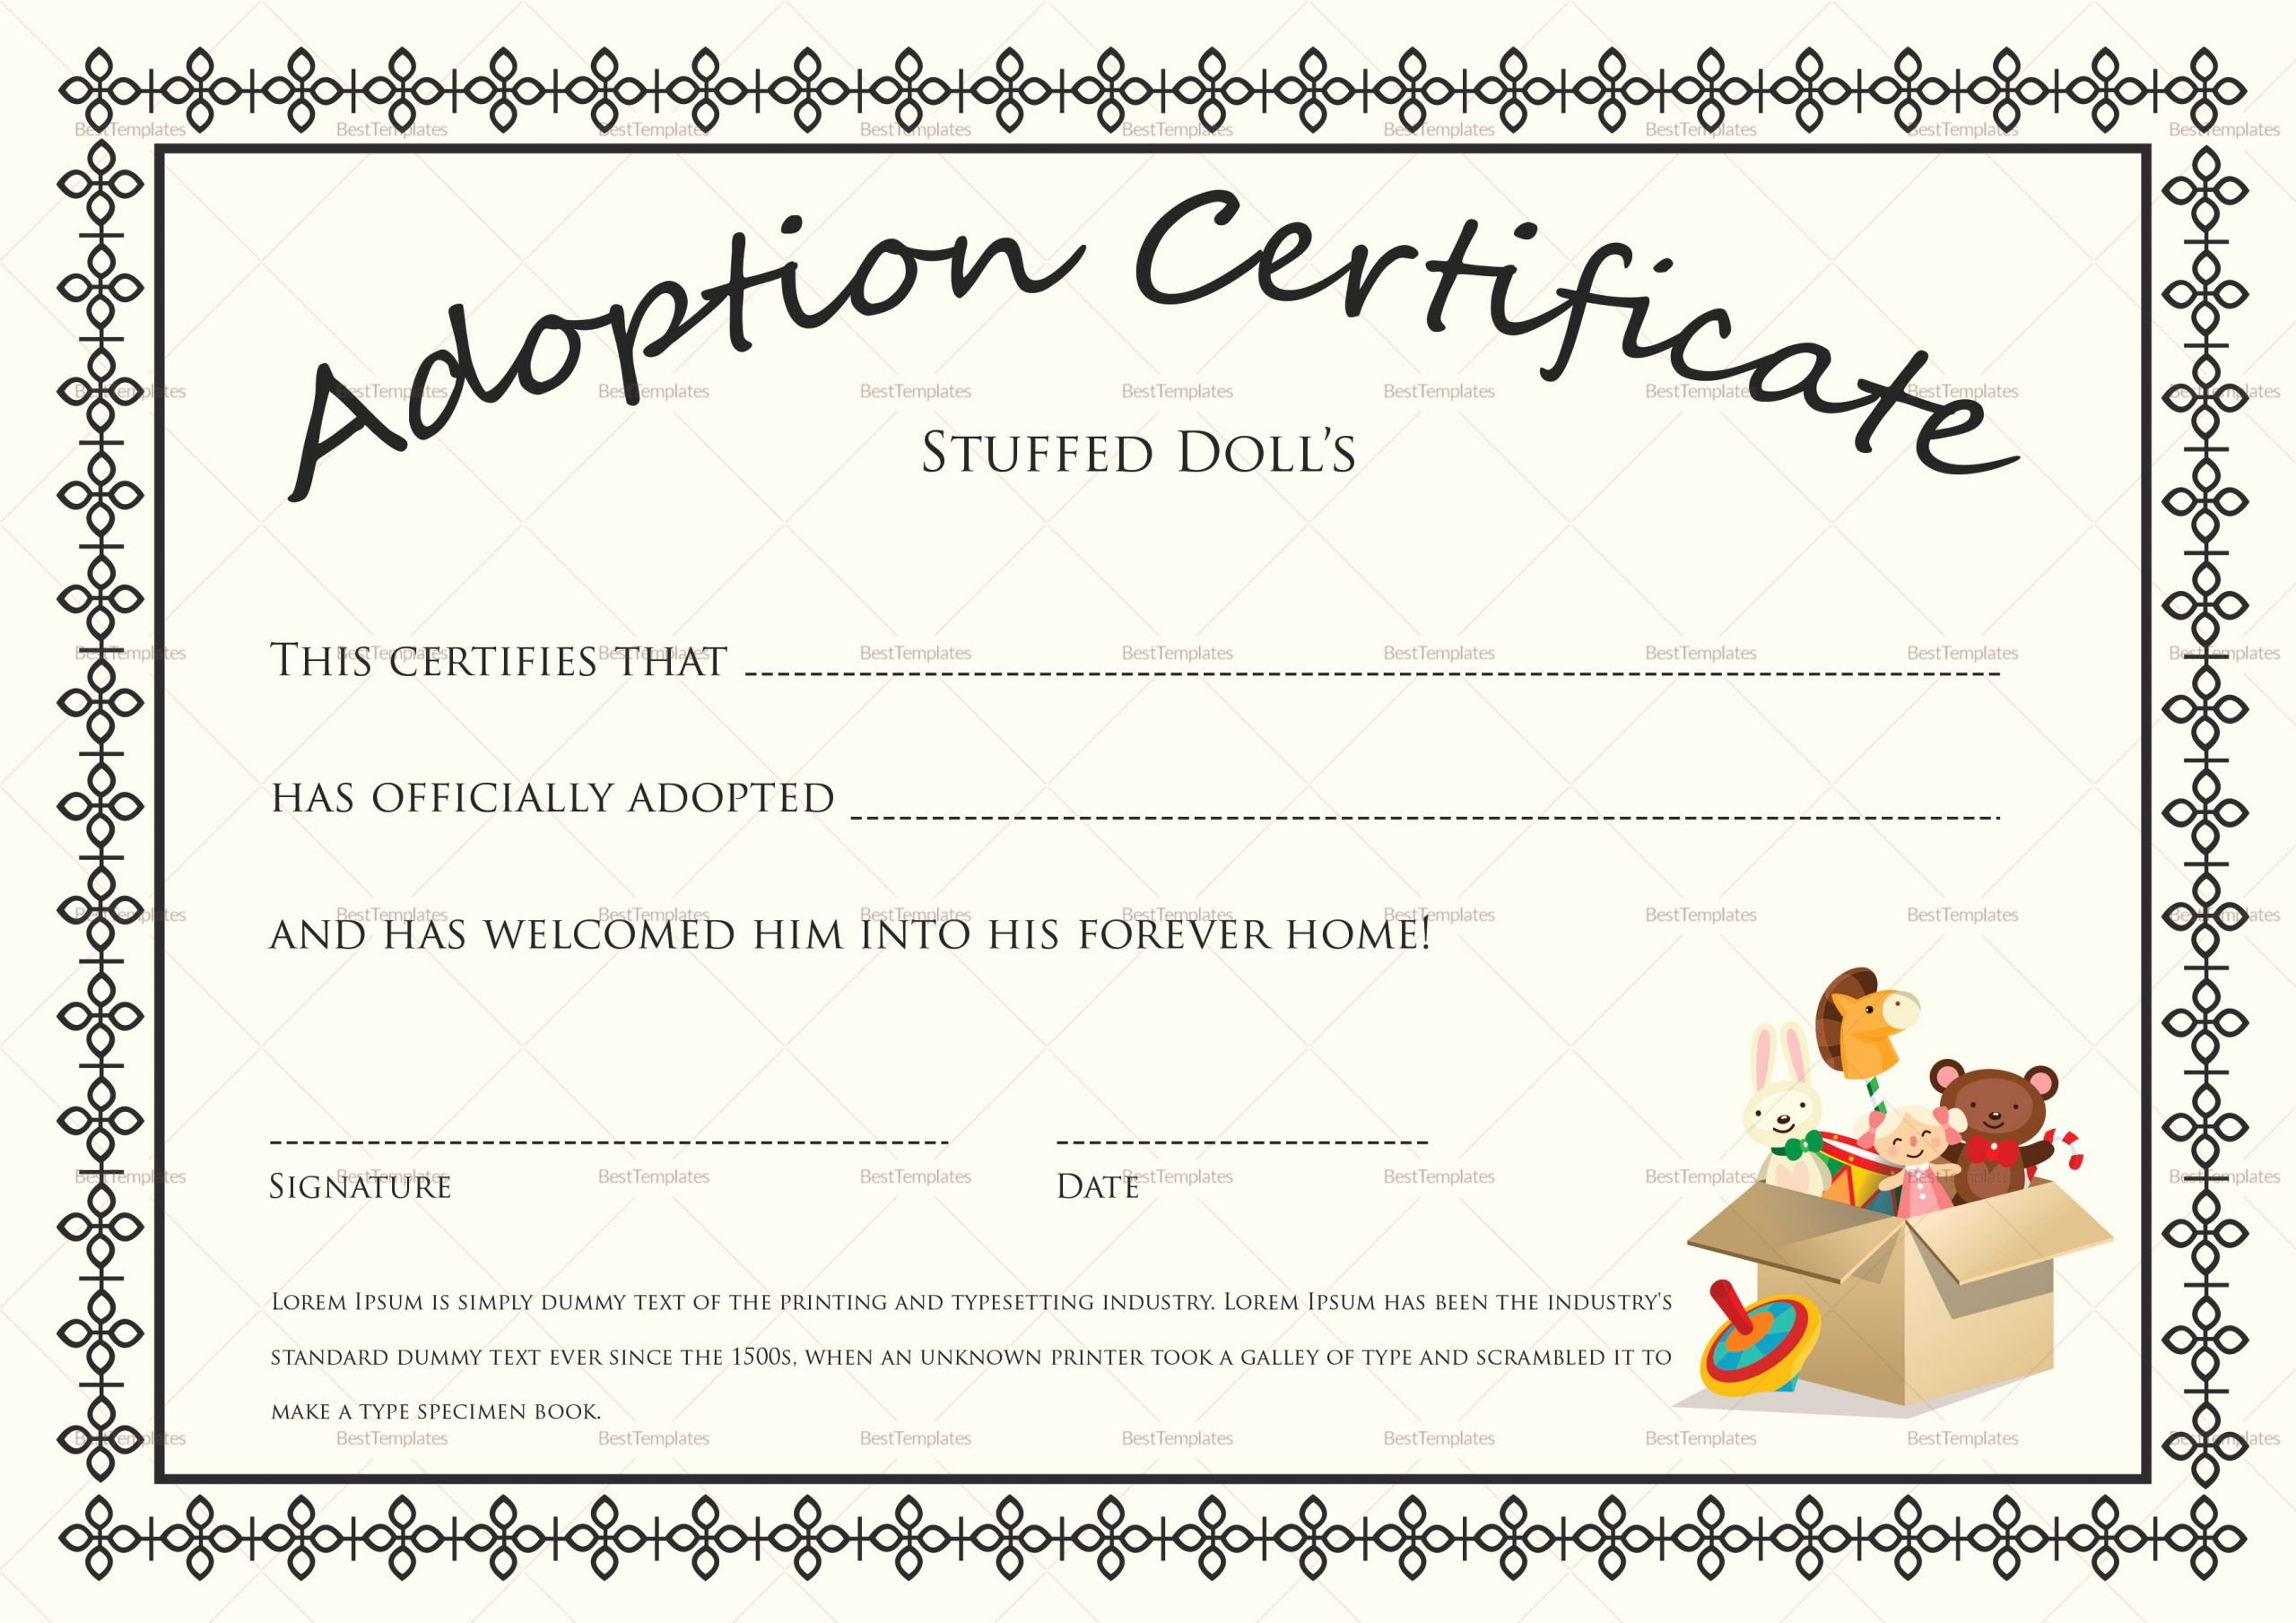 Adoption Certificate Template Word Fresh Doll Adoption Certificate Design Template In Psd Word